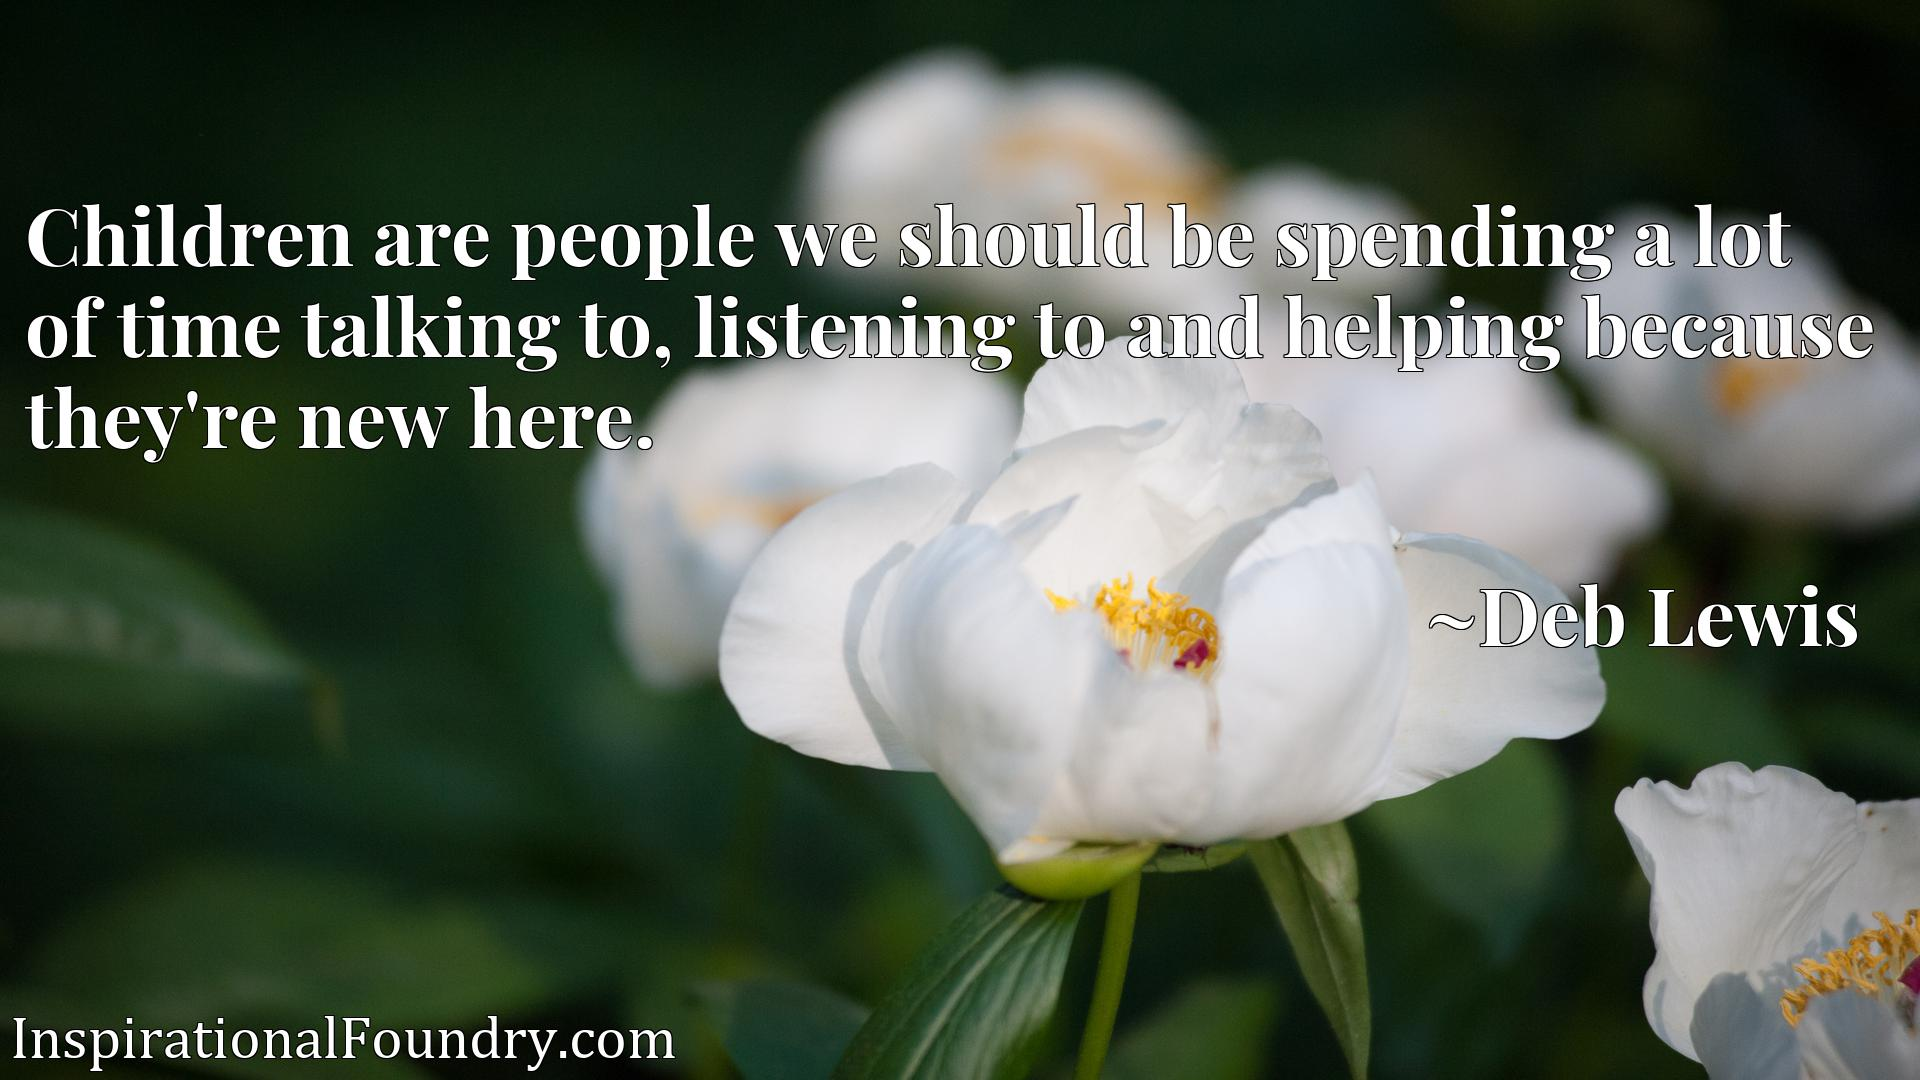 Children are people we should be spending a lot of time talking to, listening to and helping because they're new here.